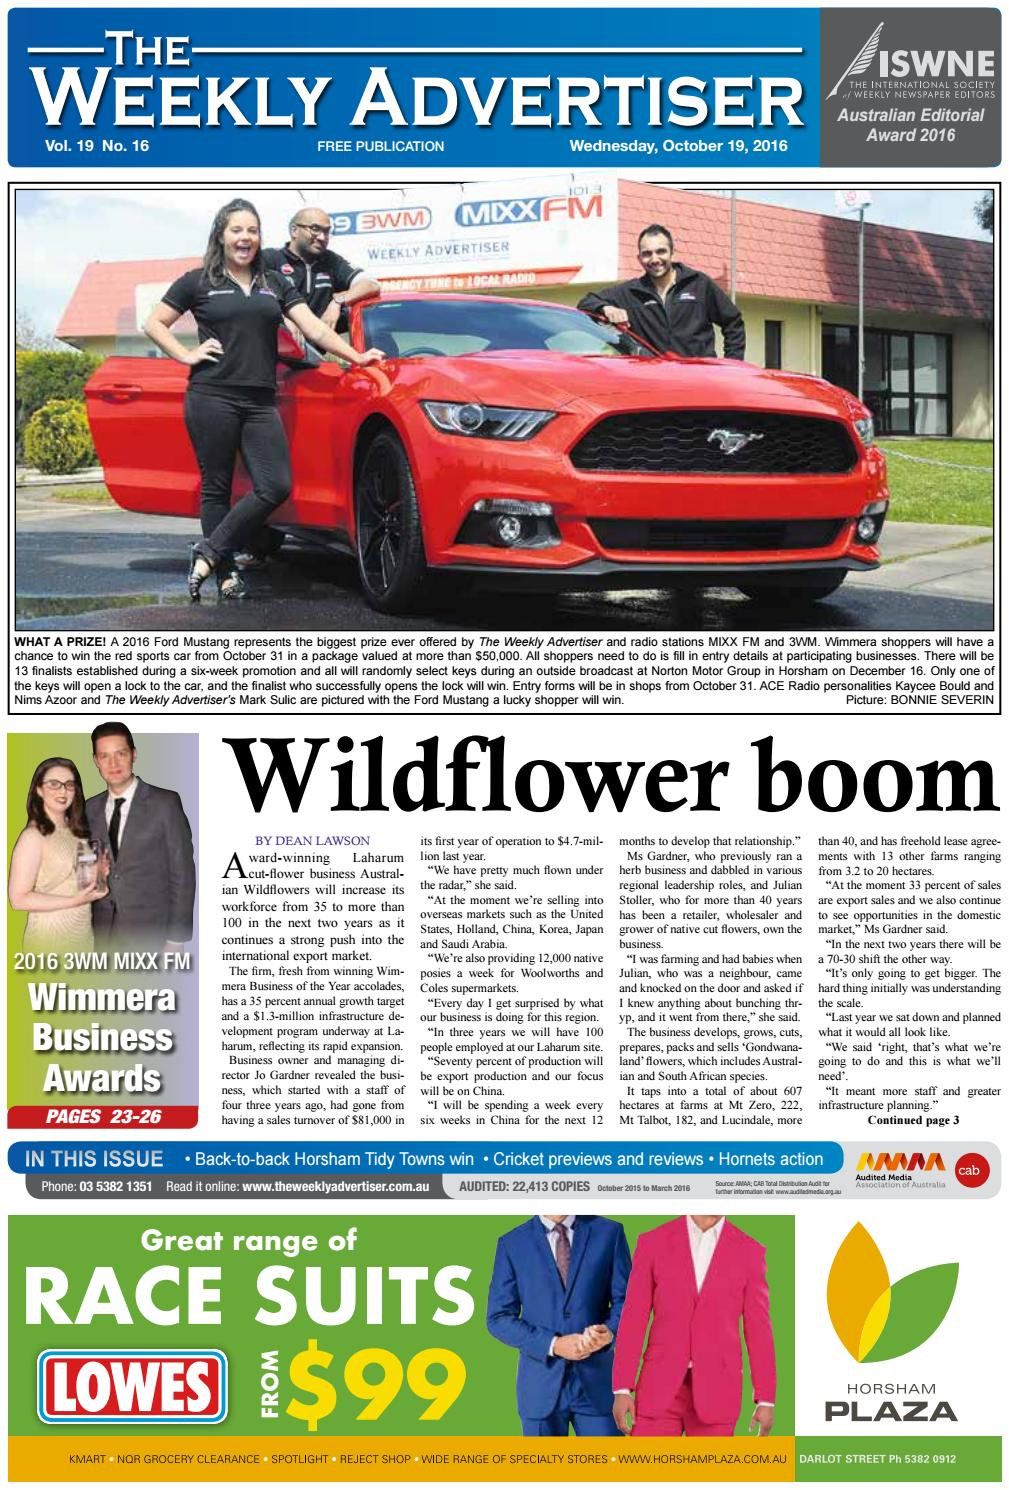 The Weekly Advertiser - Wednesday, October 19, 2016 by The